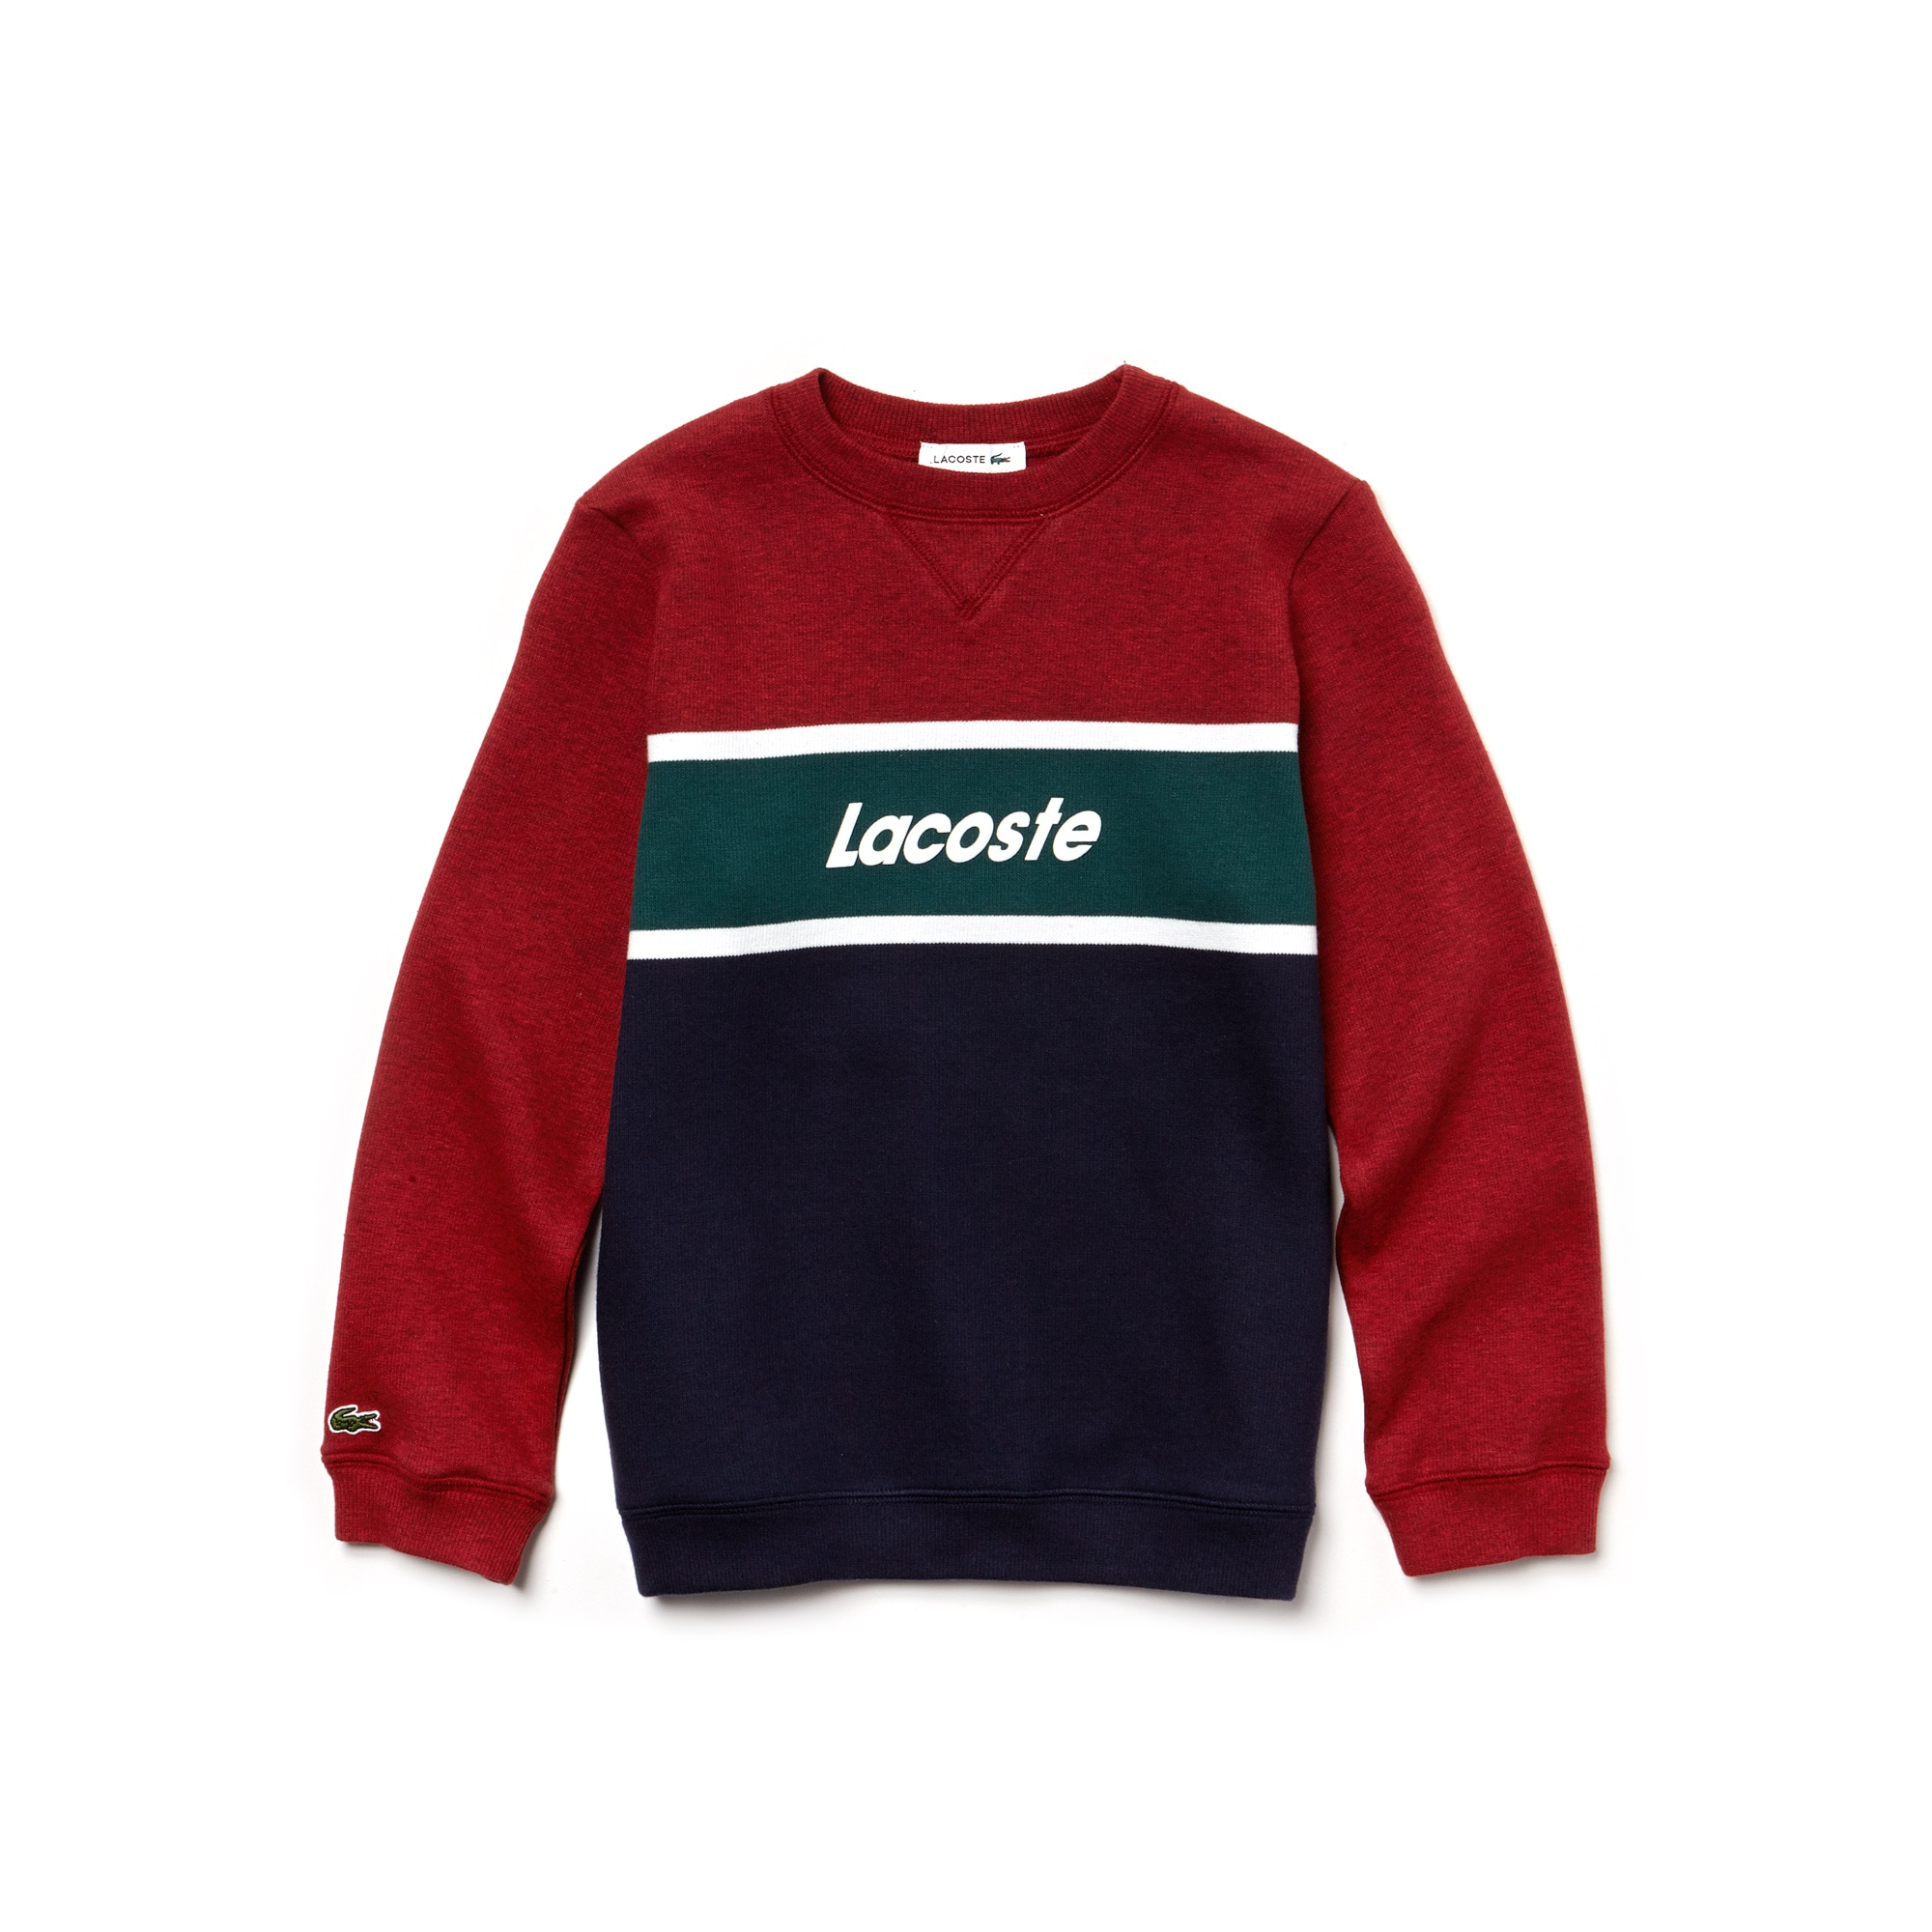 sale clothing collection kids fashion lacoste